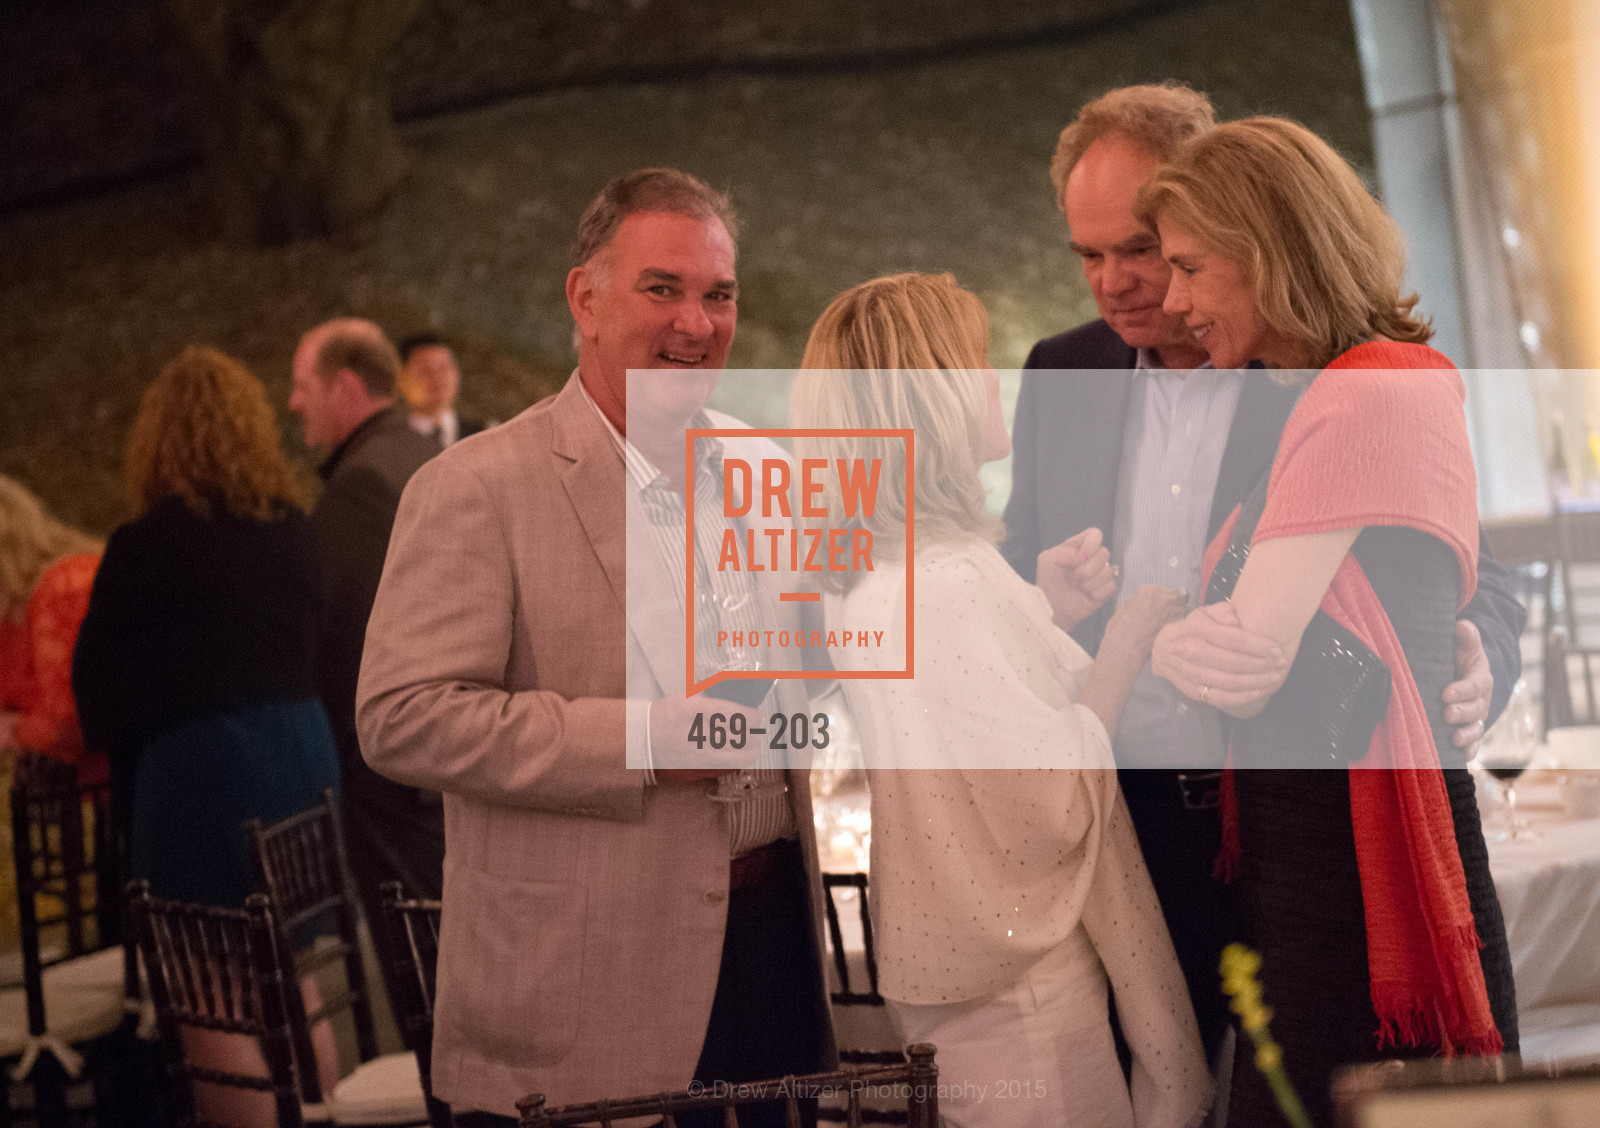 Dennis Calas, Lorna Meyer Calas, Steve Fike, Kay Fike, Festival del Sole Patron Dinner at Odette Estate, Odette Estate. 5998 Silverado Trail, July 26th, 2015,Drew Altizer, Drew Altizer Photography, full-service event agency, private events, San Francisco photographer, photographer California